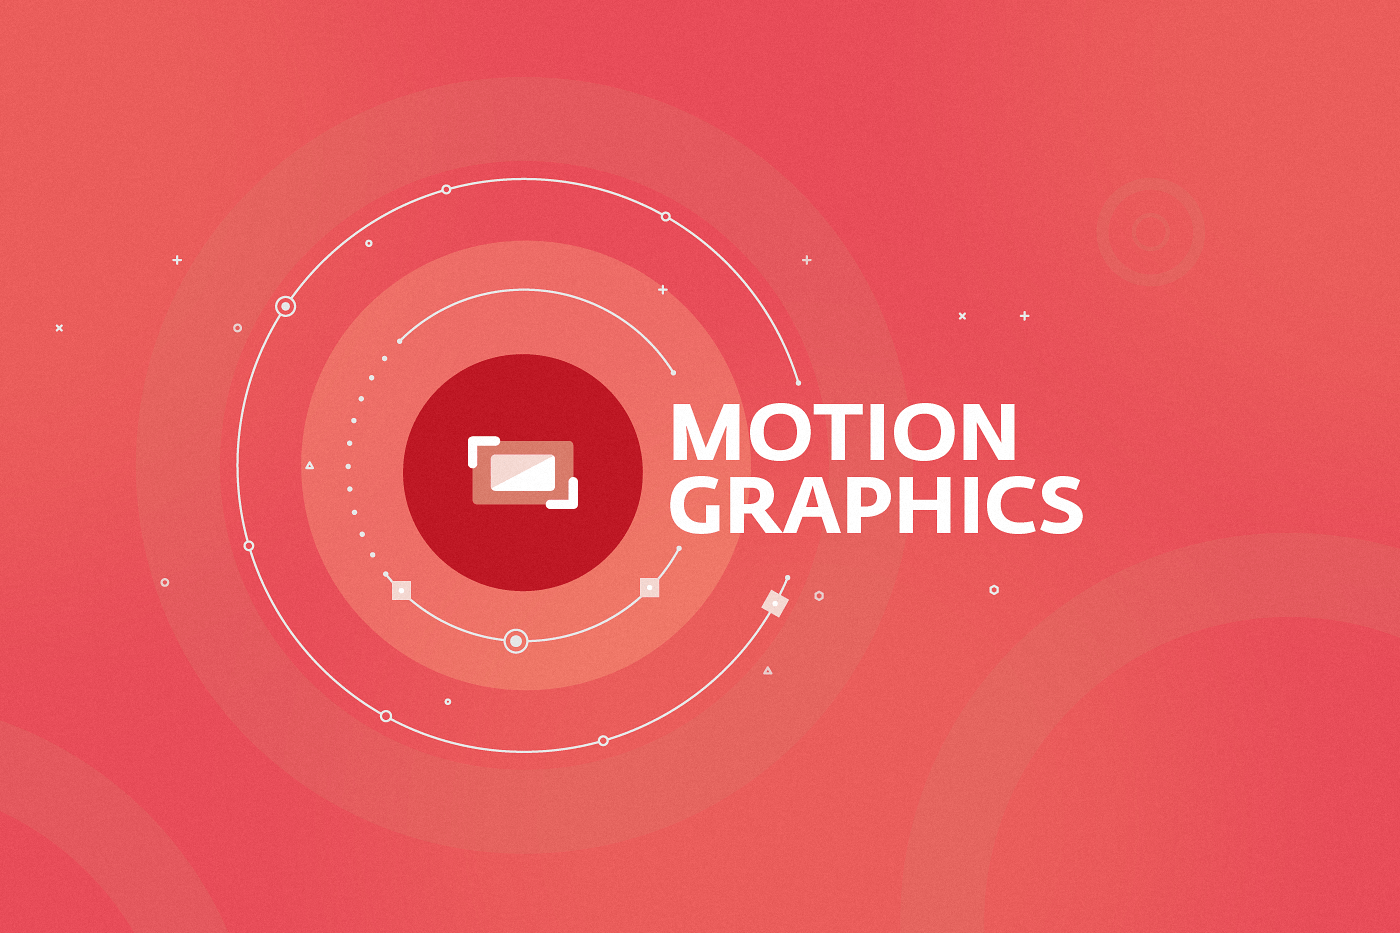 motiongraphics - 2 Workshops, 1 City